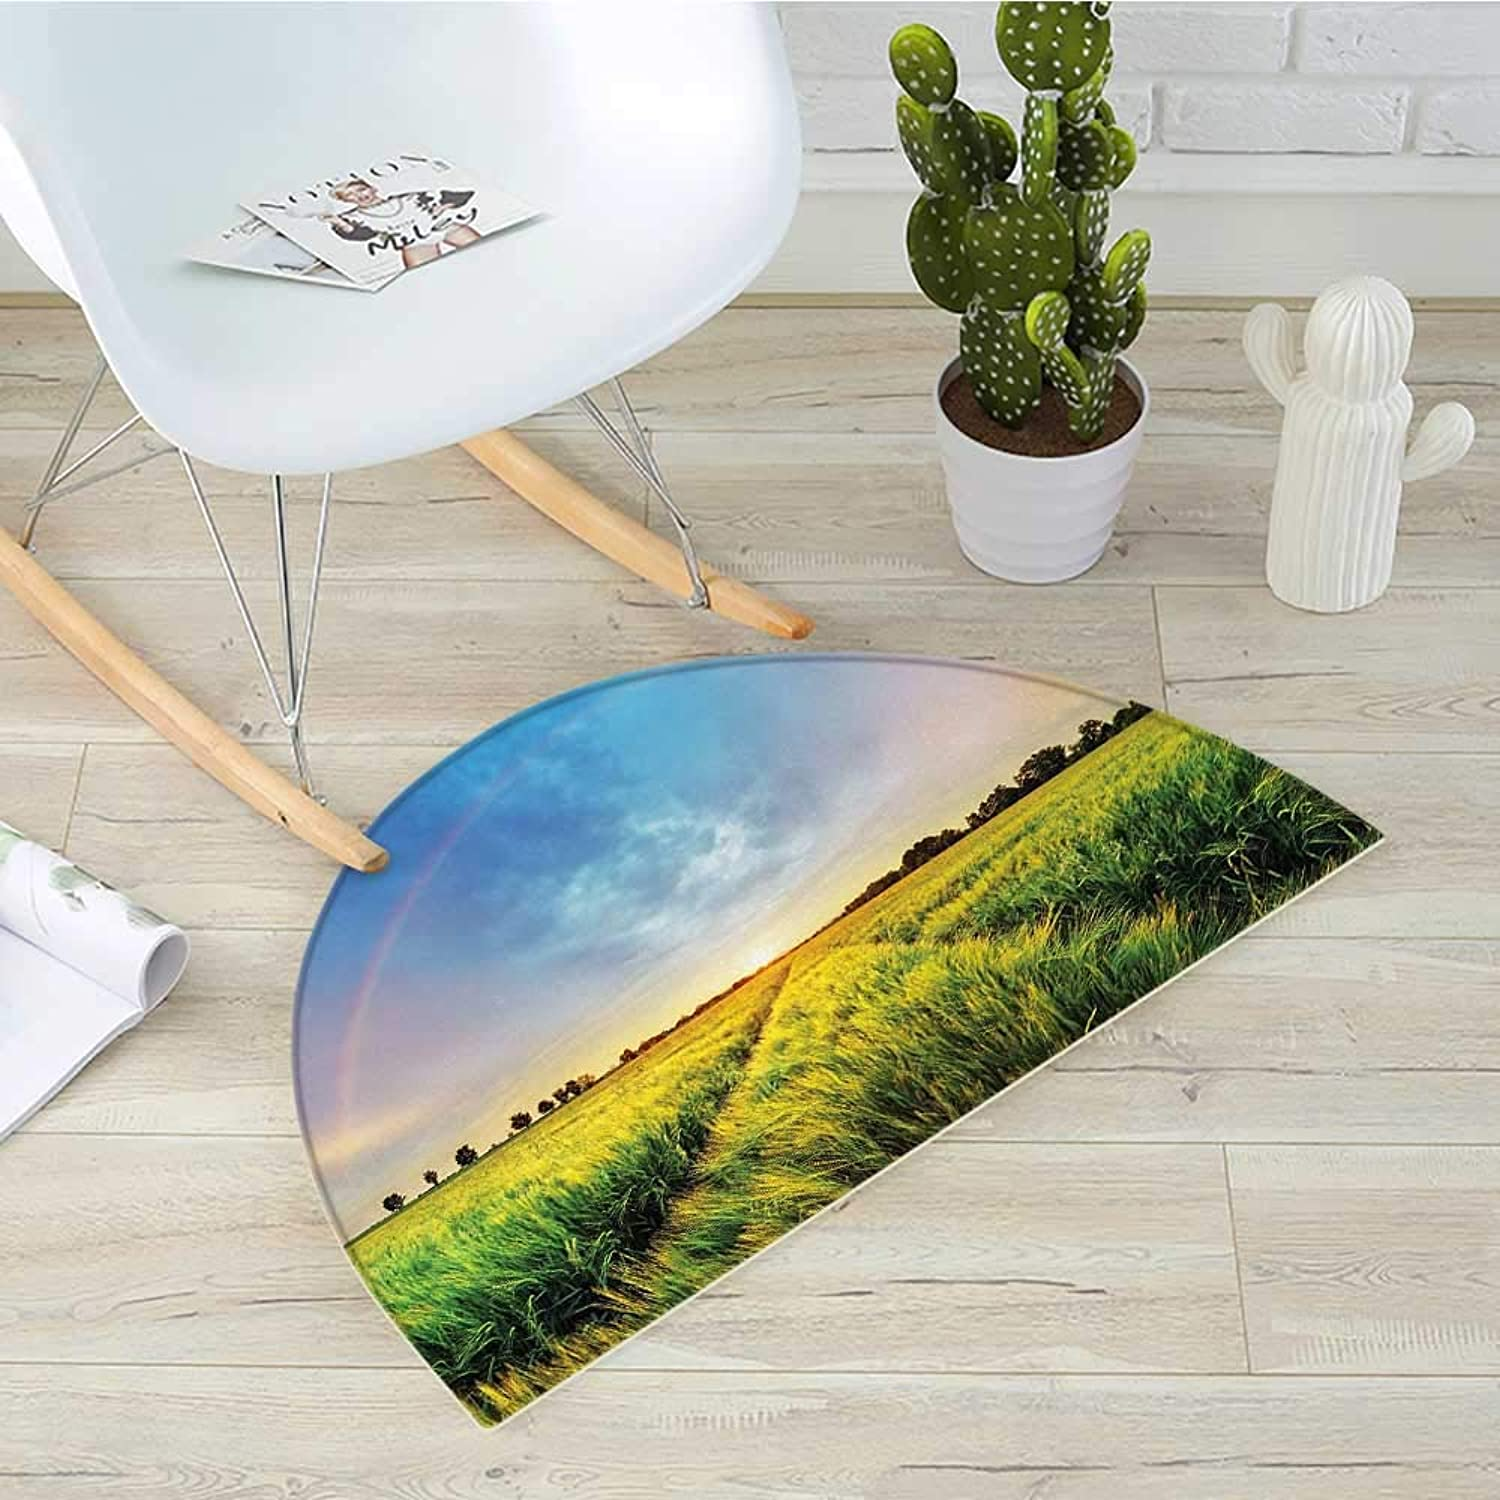 Rustic Semicircle Doormat Rainbow in Sky Over Wheat Field at Sunset Natural Paradise Rural Life Illustration Halfmoon doormats H 51.1  xD 76.7  Green Yellow